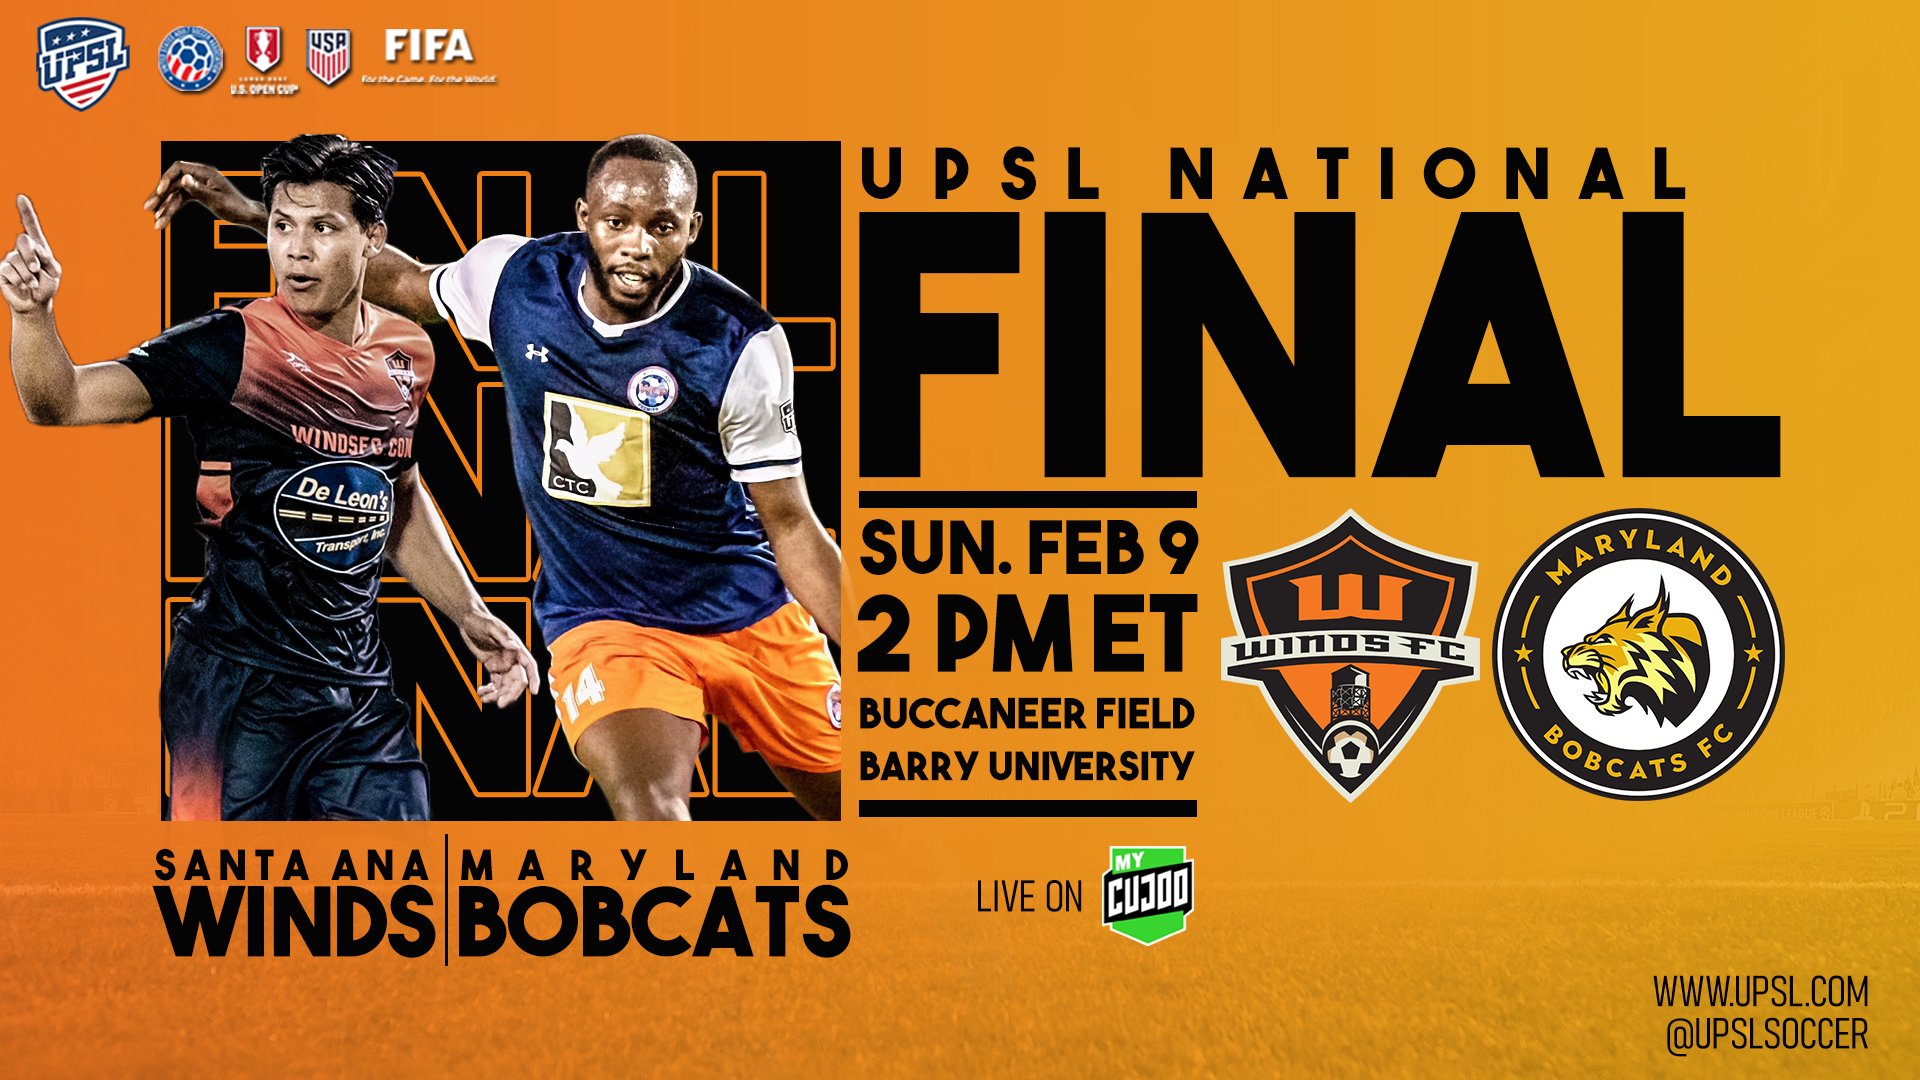 United Premier Soccer League National Final is LIVE TODAY on MyCujoo.tv